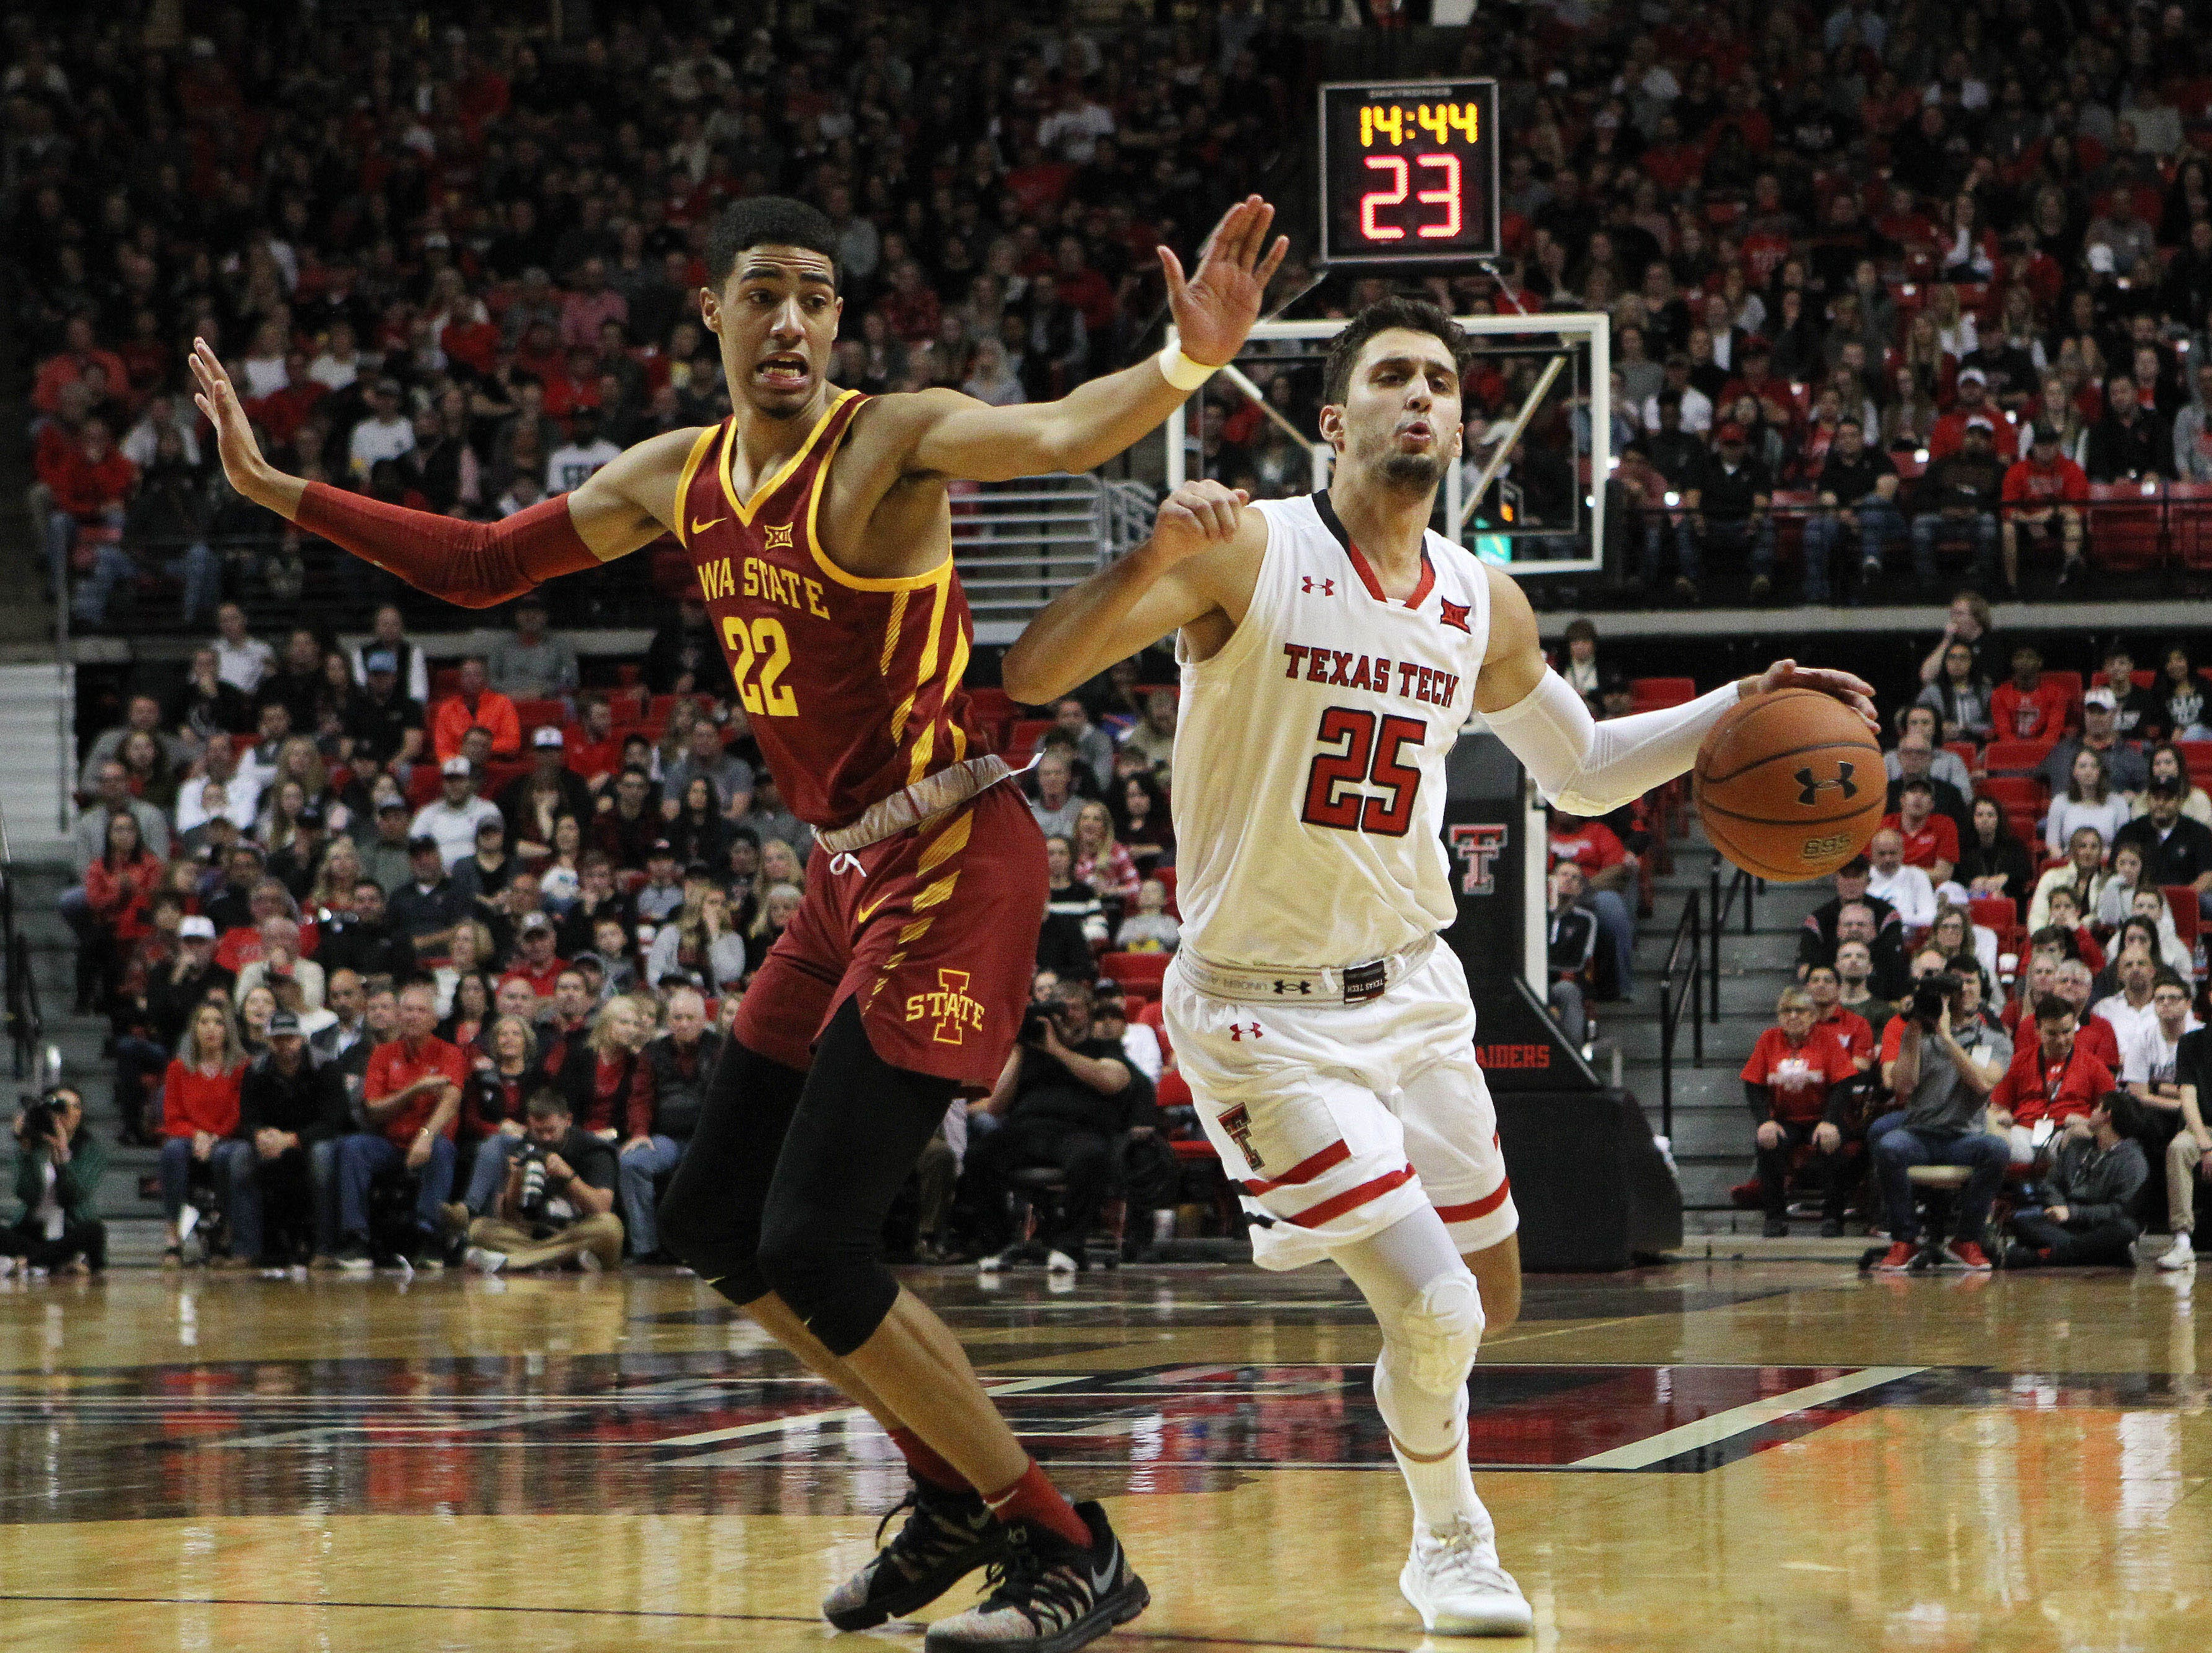 Jan 16, 2019; Lubbock, TX, USA; Texas Tech Red Raiders guard Davide Moratti (25) dribbles the ball around Iowa State Cyclones guard Tyrese Haliburton (22) in the first half at United Supermarkets Arena.